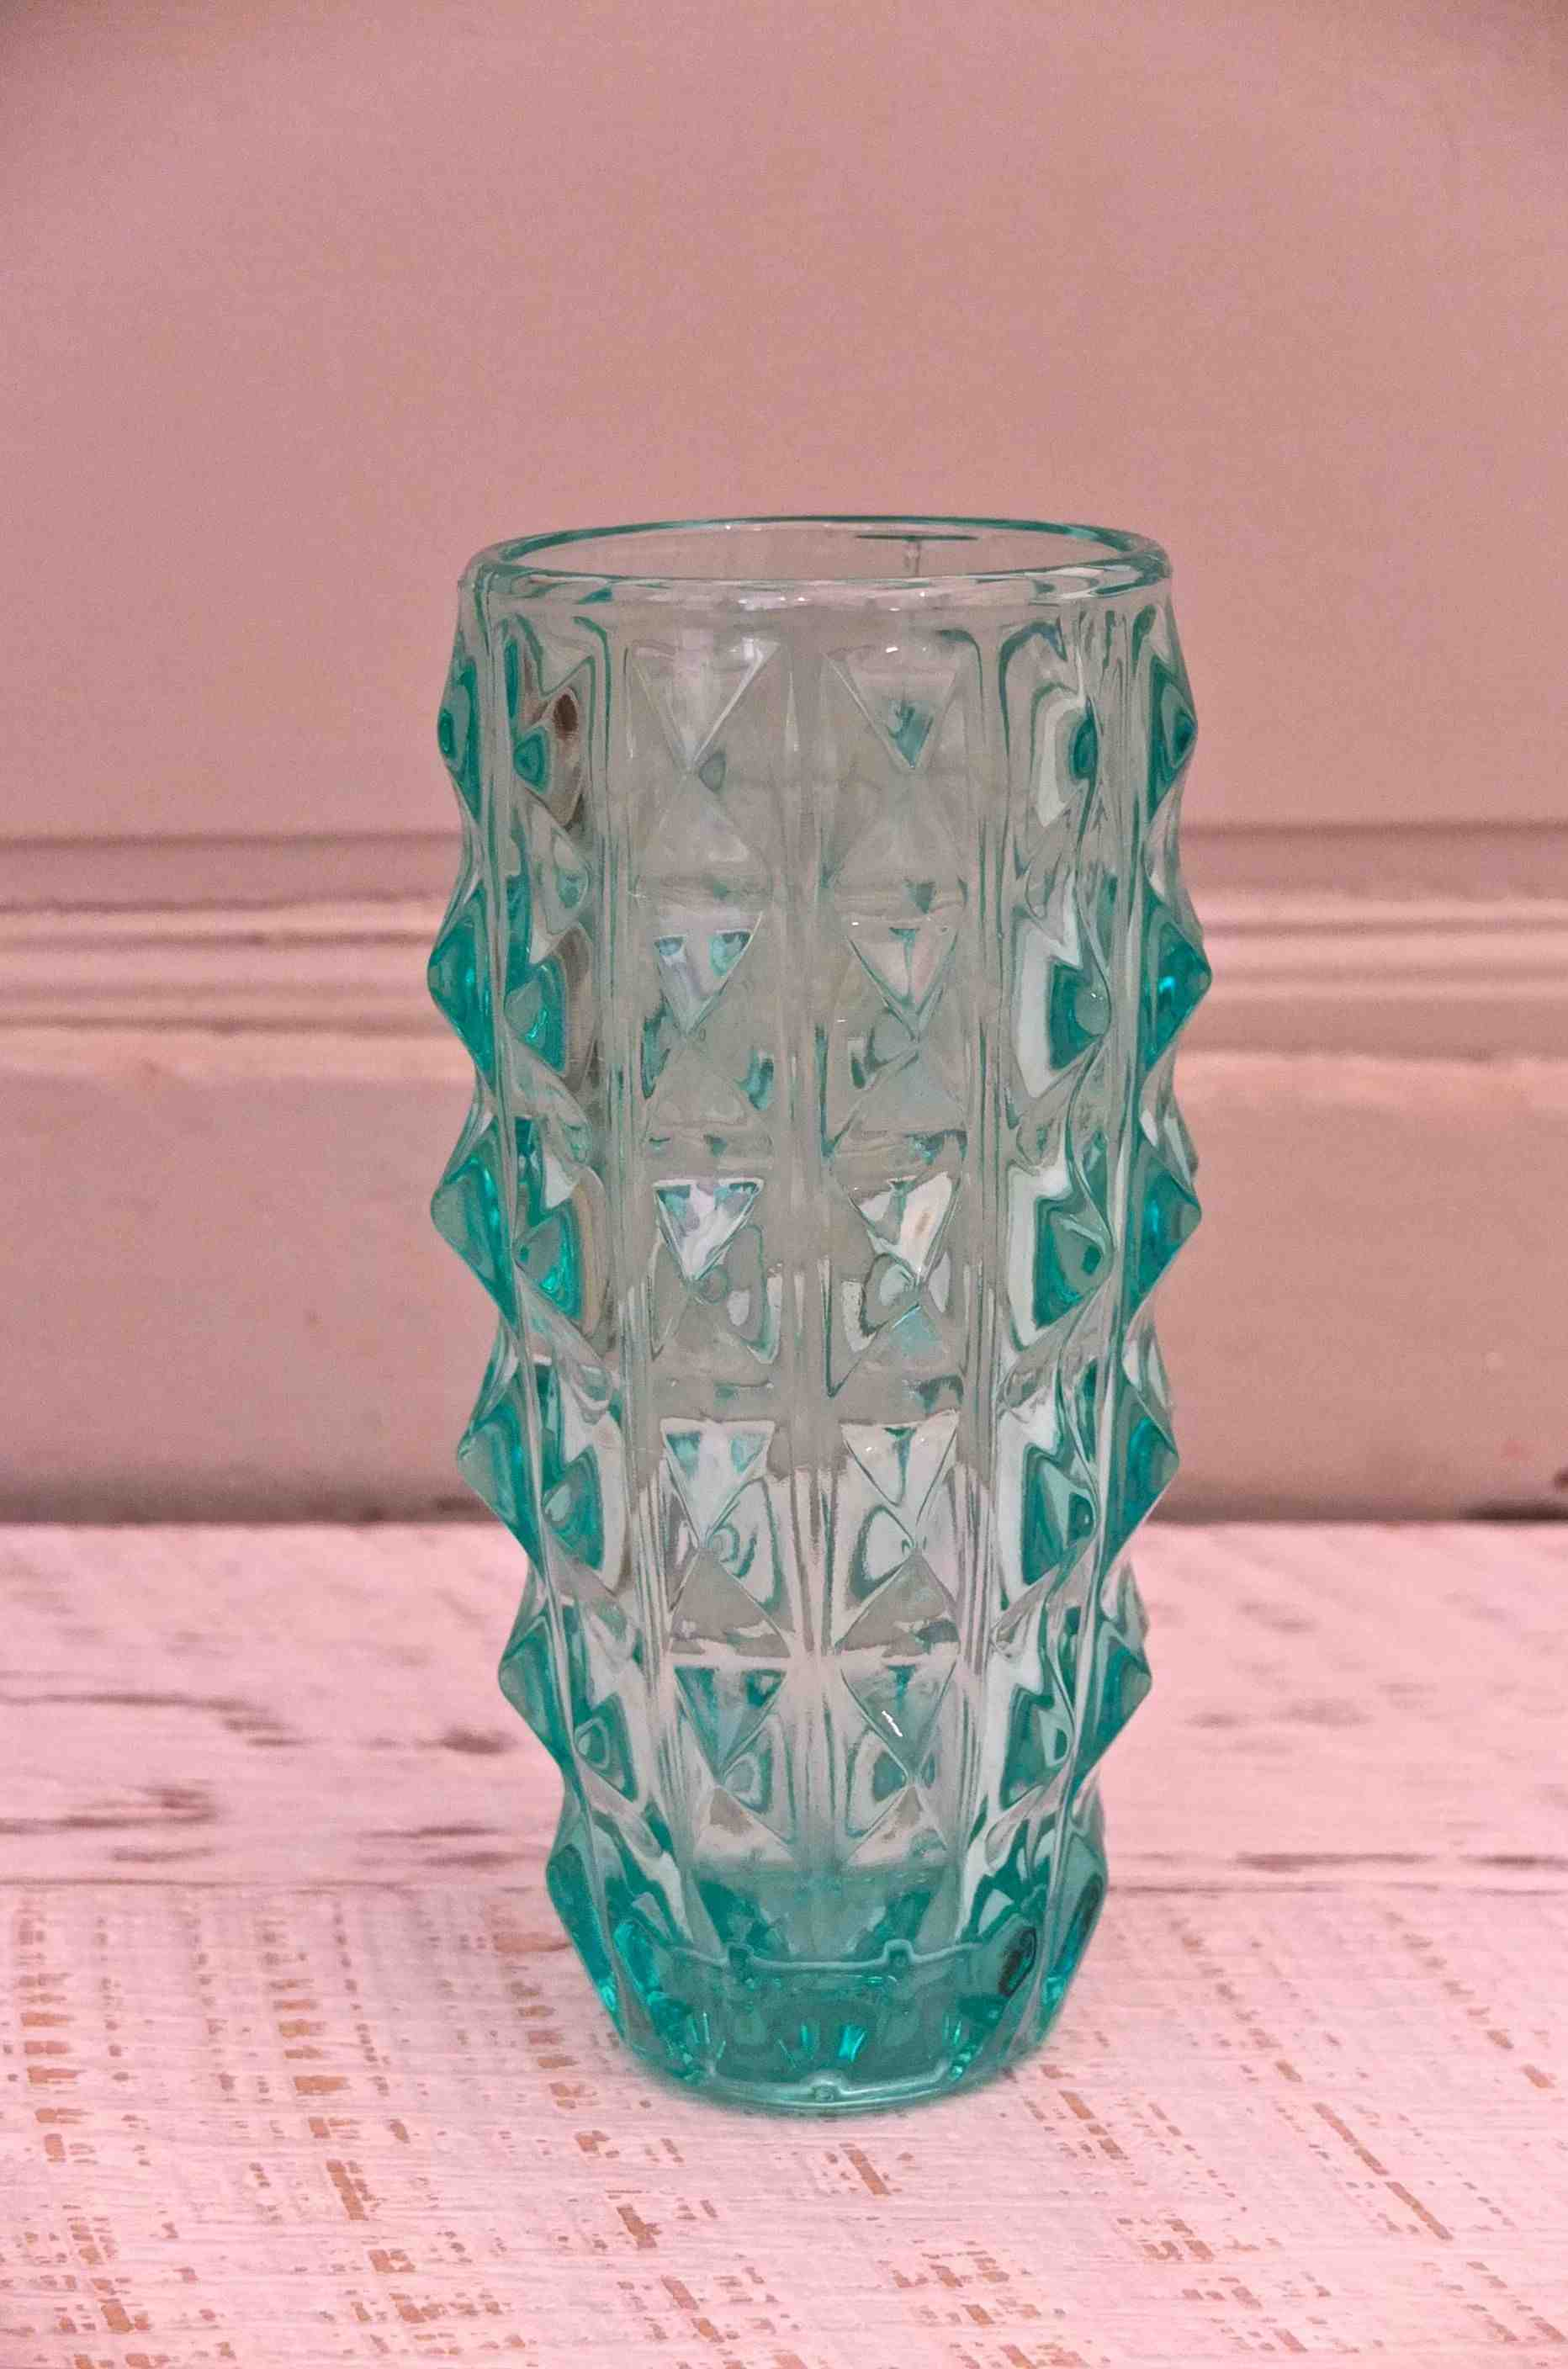 slavia vintage mobilier vintage vase en verre de style bruxelles turquoise. Black Bedroom Furniture Sets. Home Design Ideas